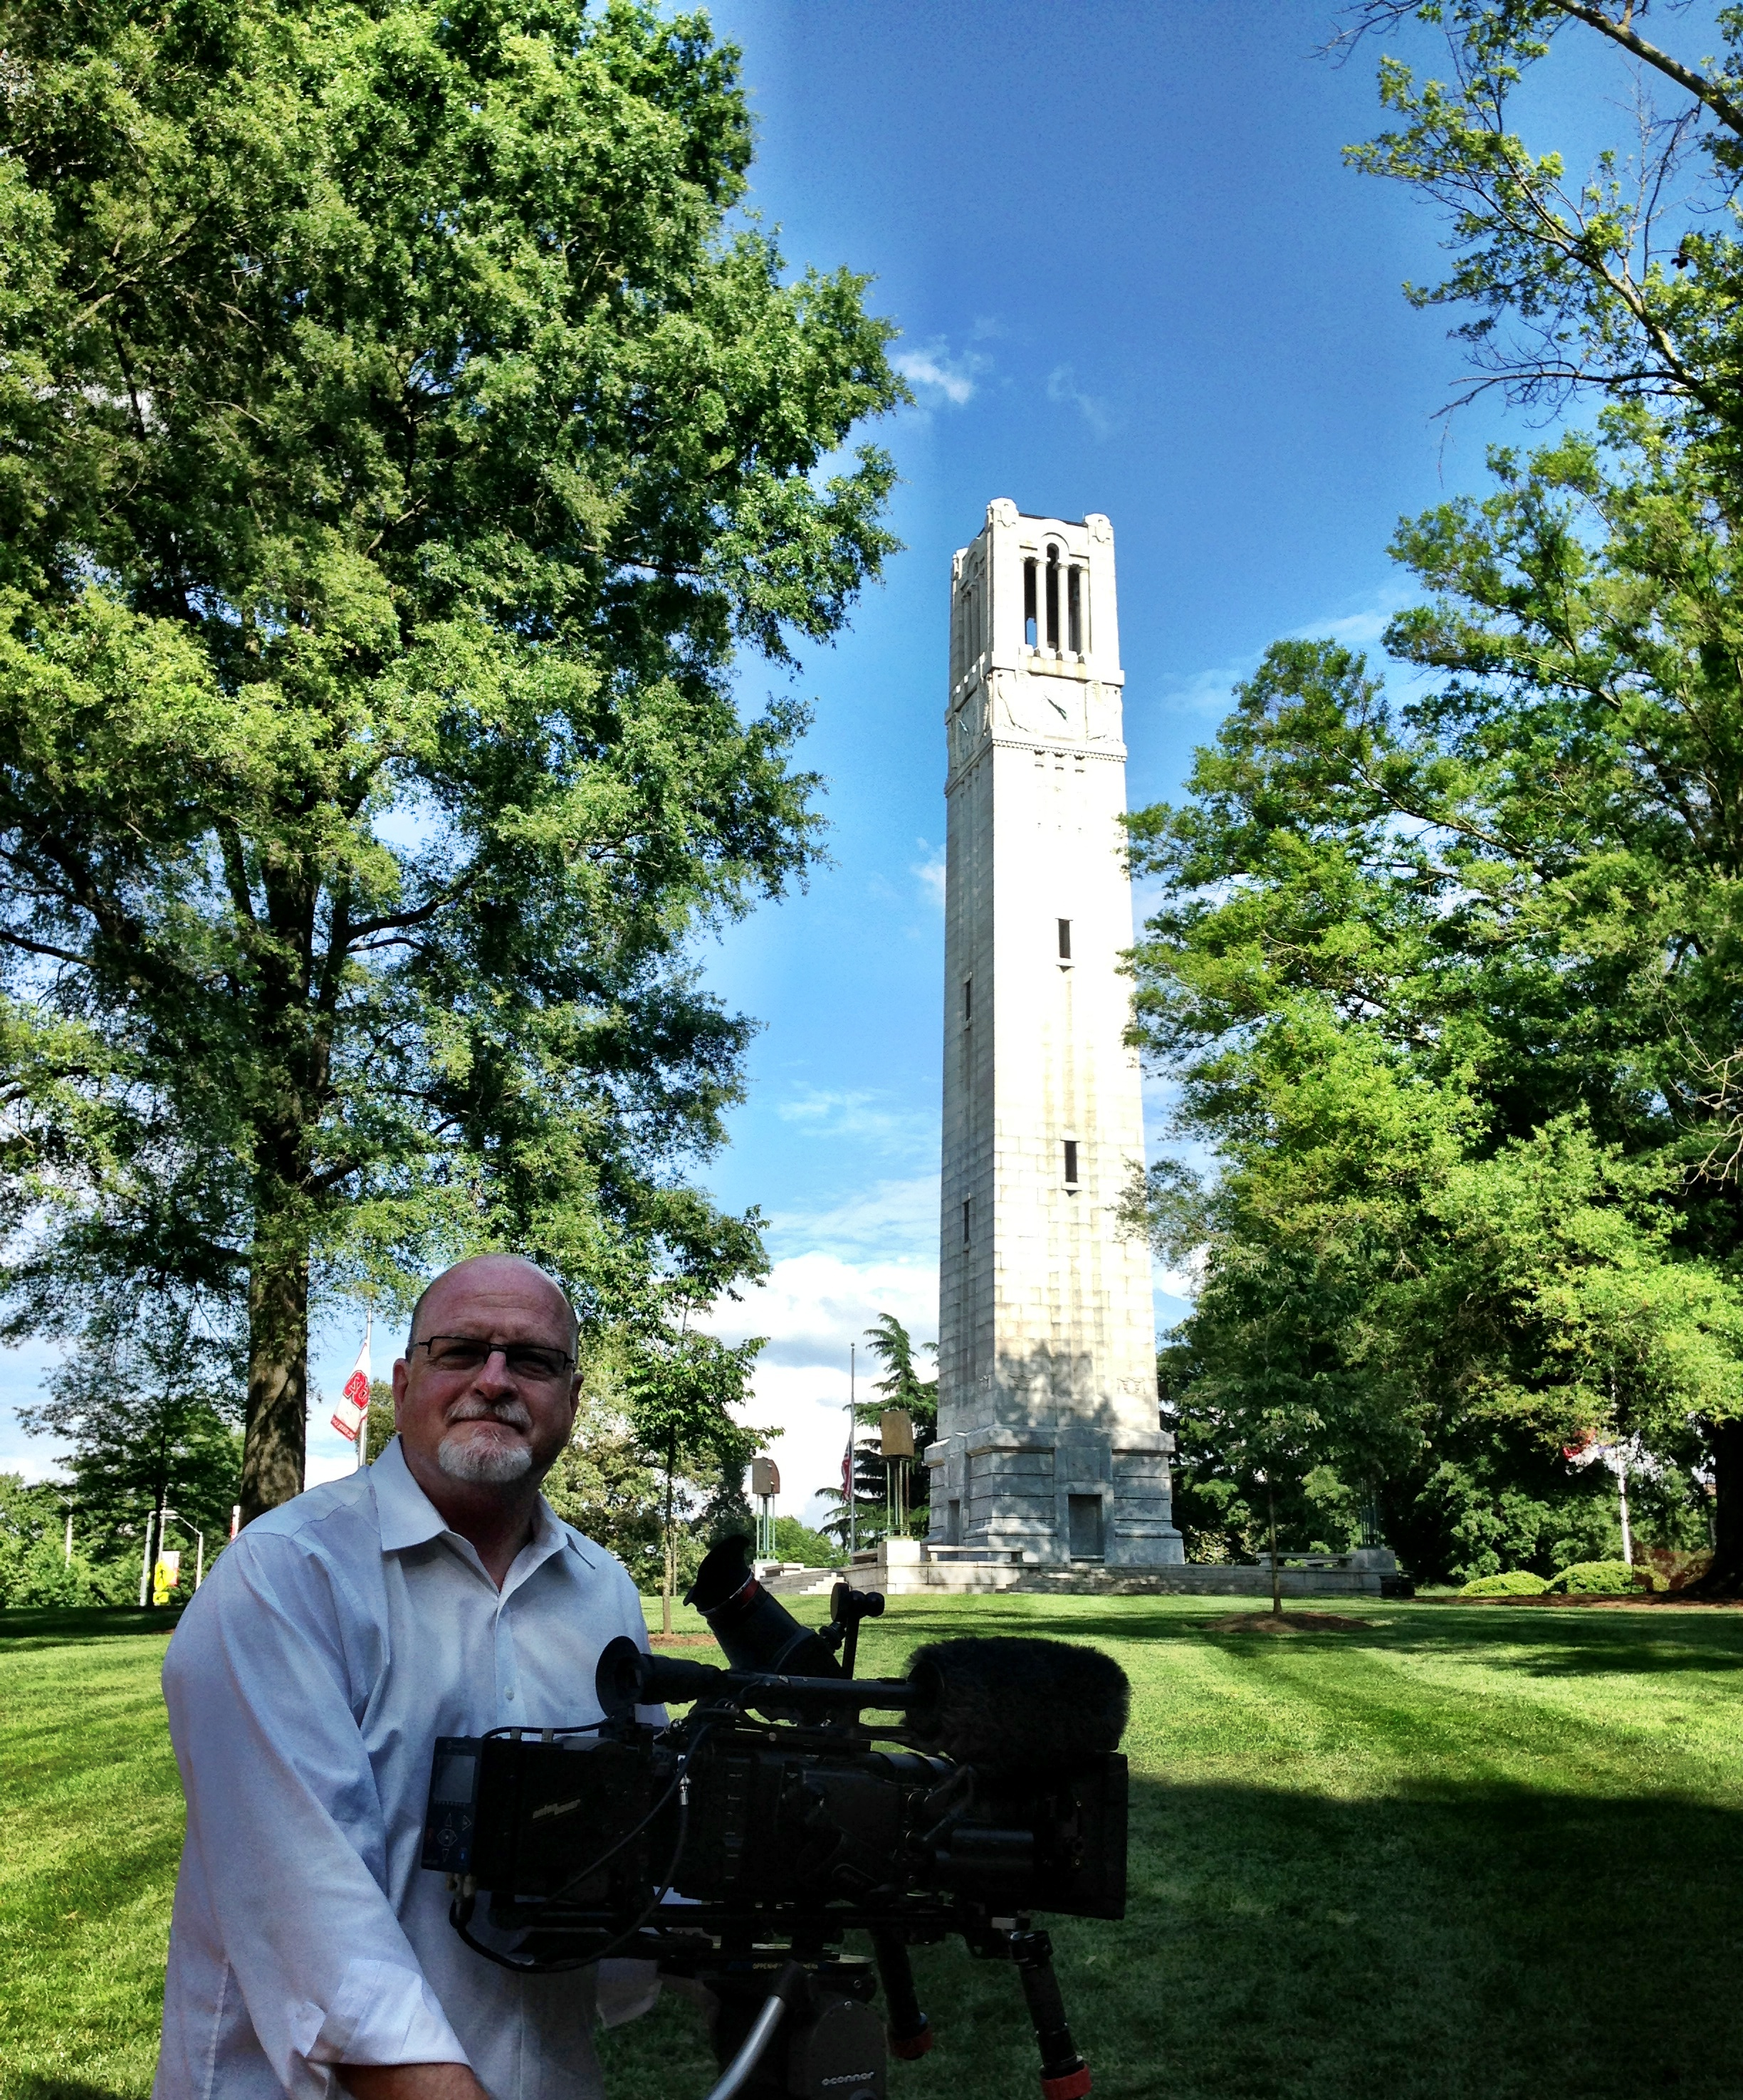 Mr. Team red jet geared up and ready to shoot at NC State University Memorial Belltower in Raleigh...